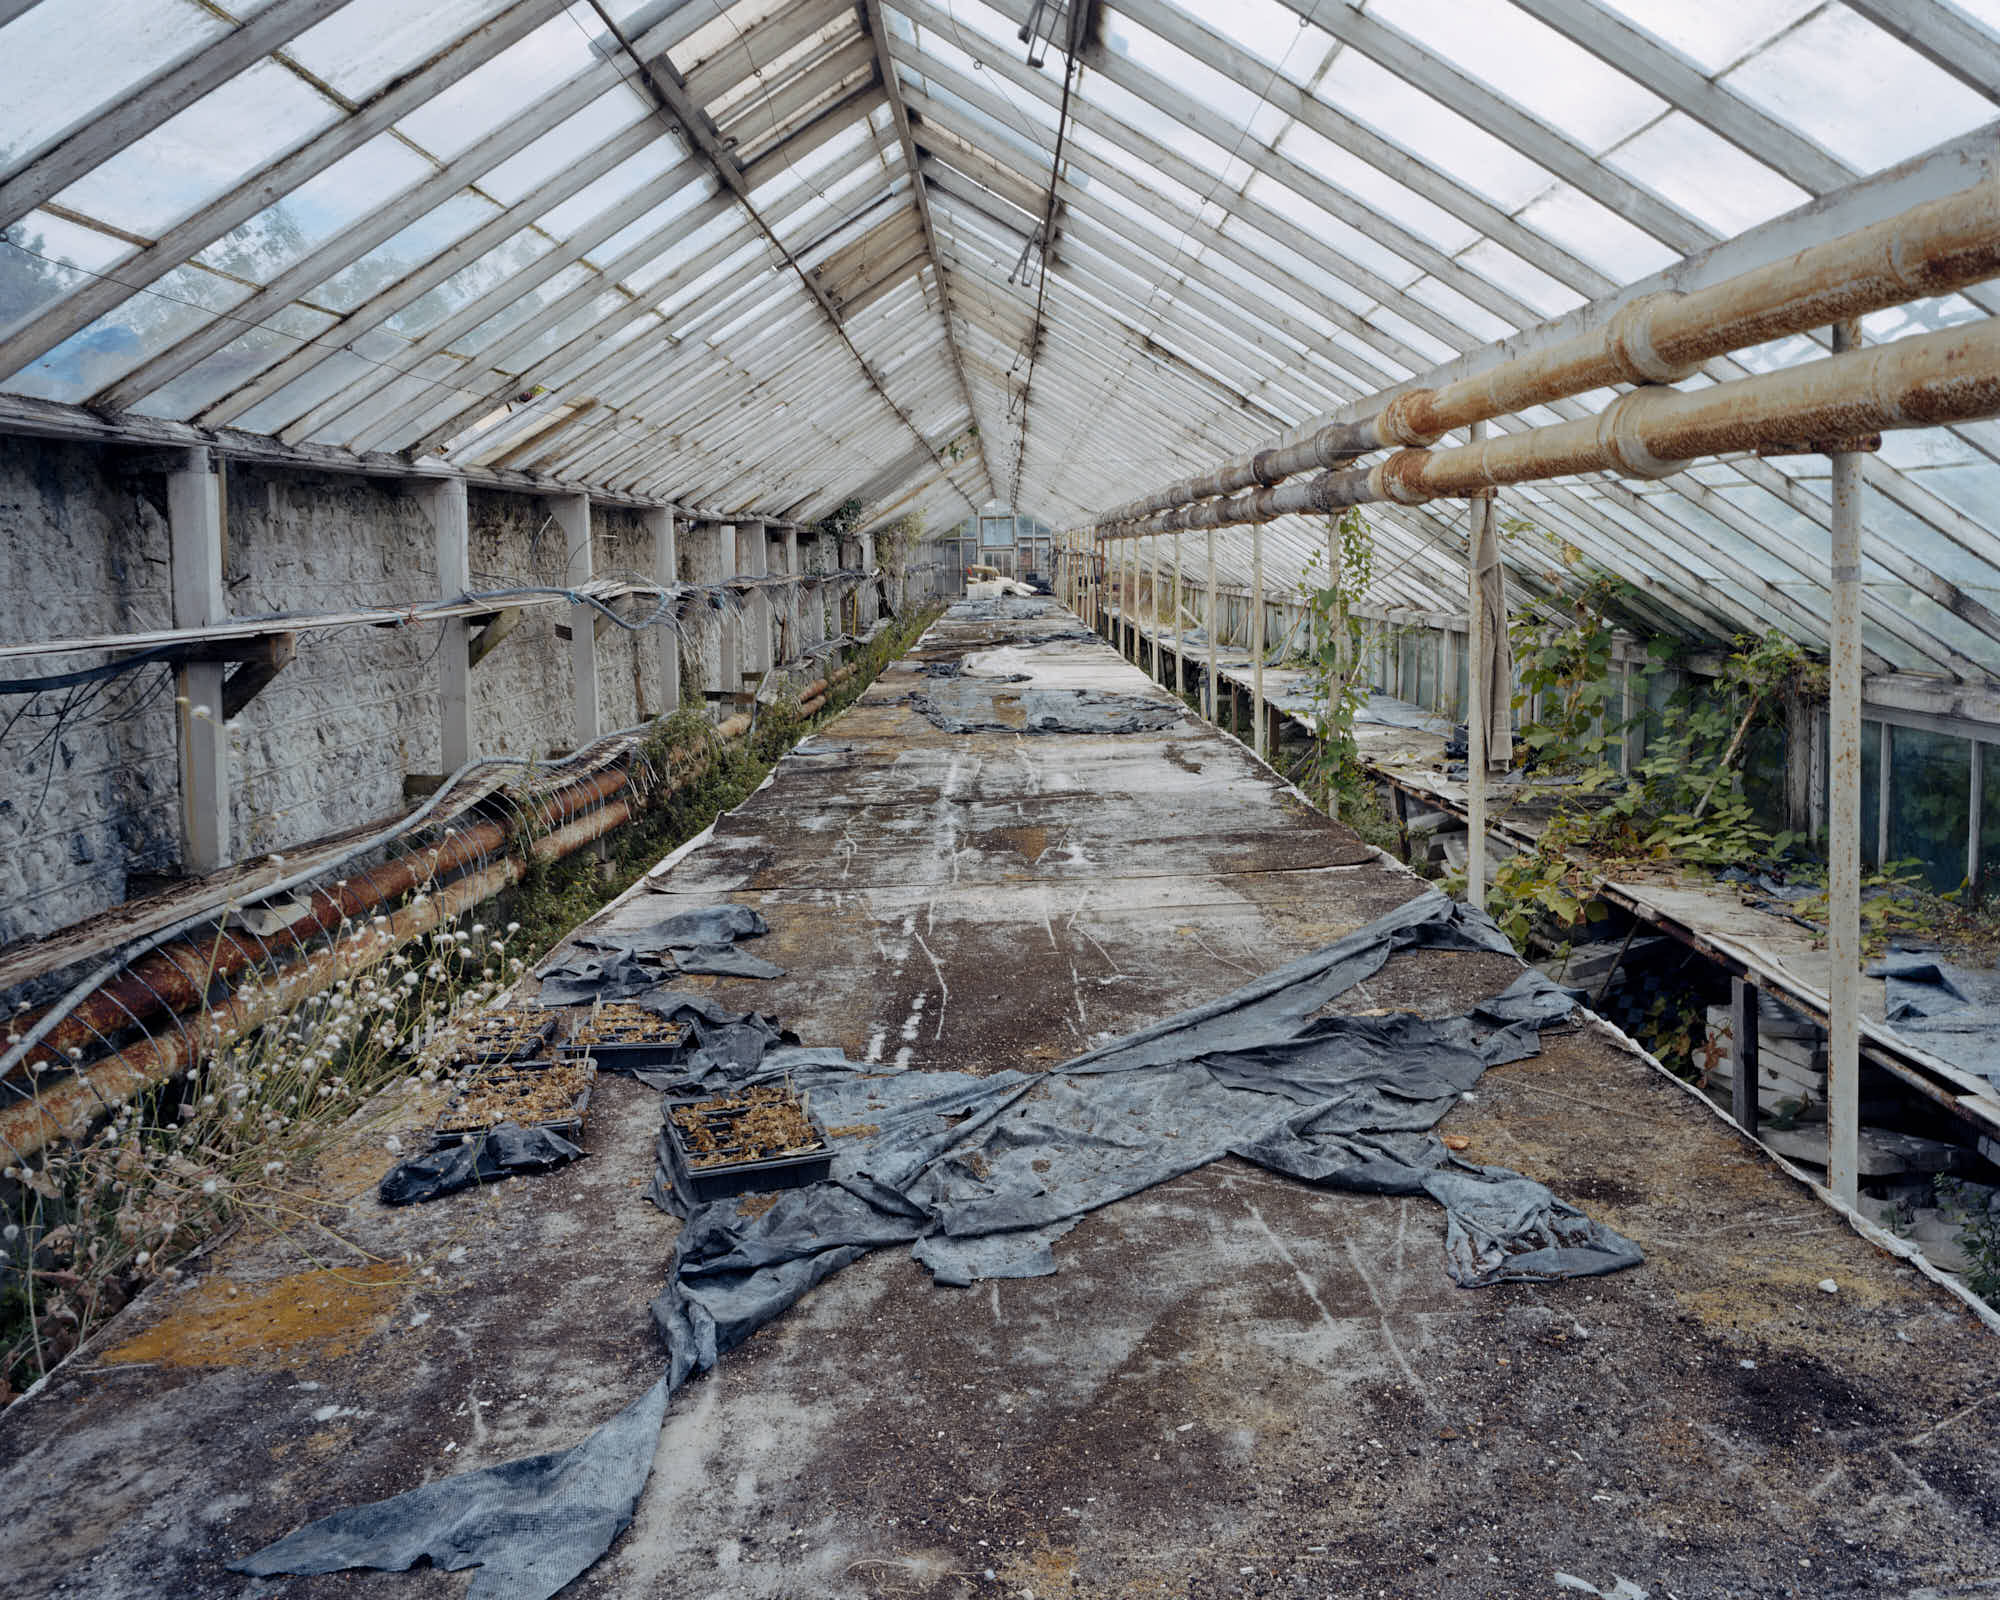 Greenhouse, Pigment Print, 102 x 127 cm, 2004, Edition of 7